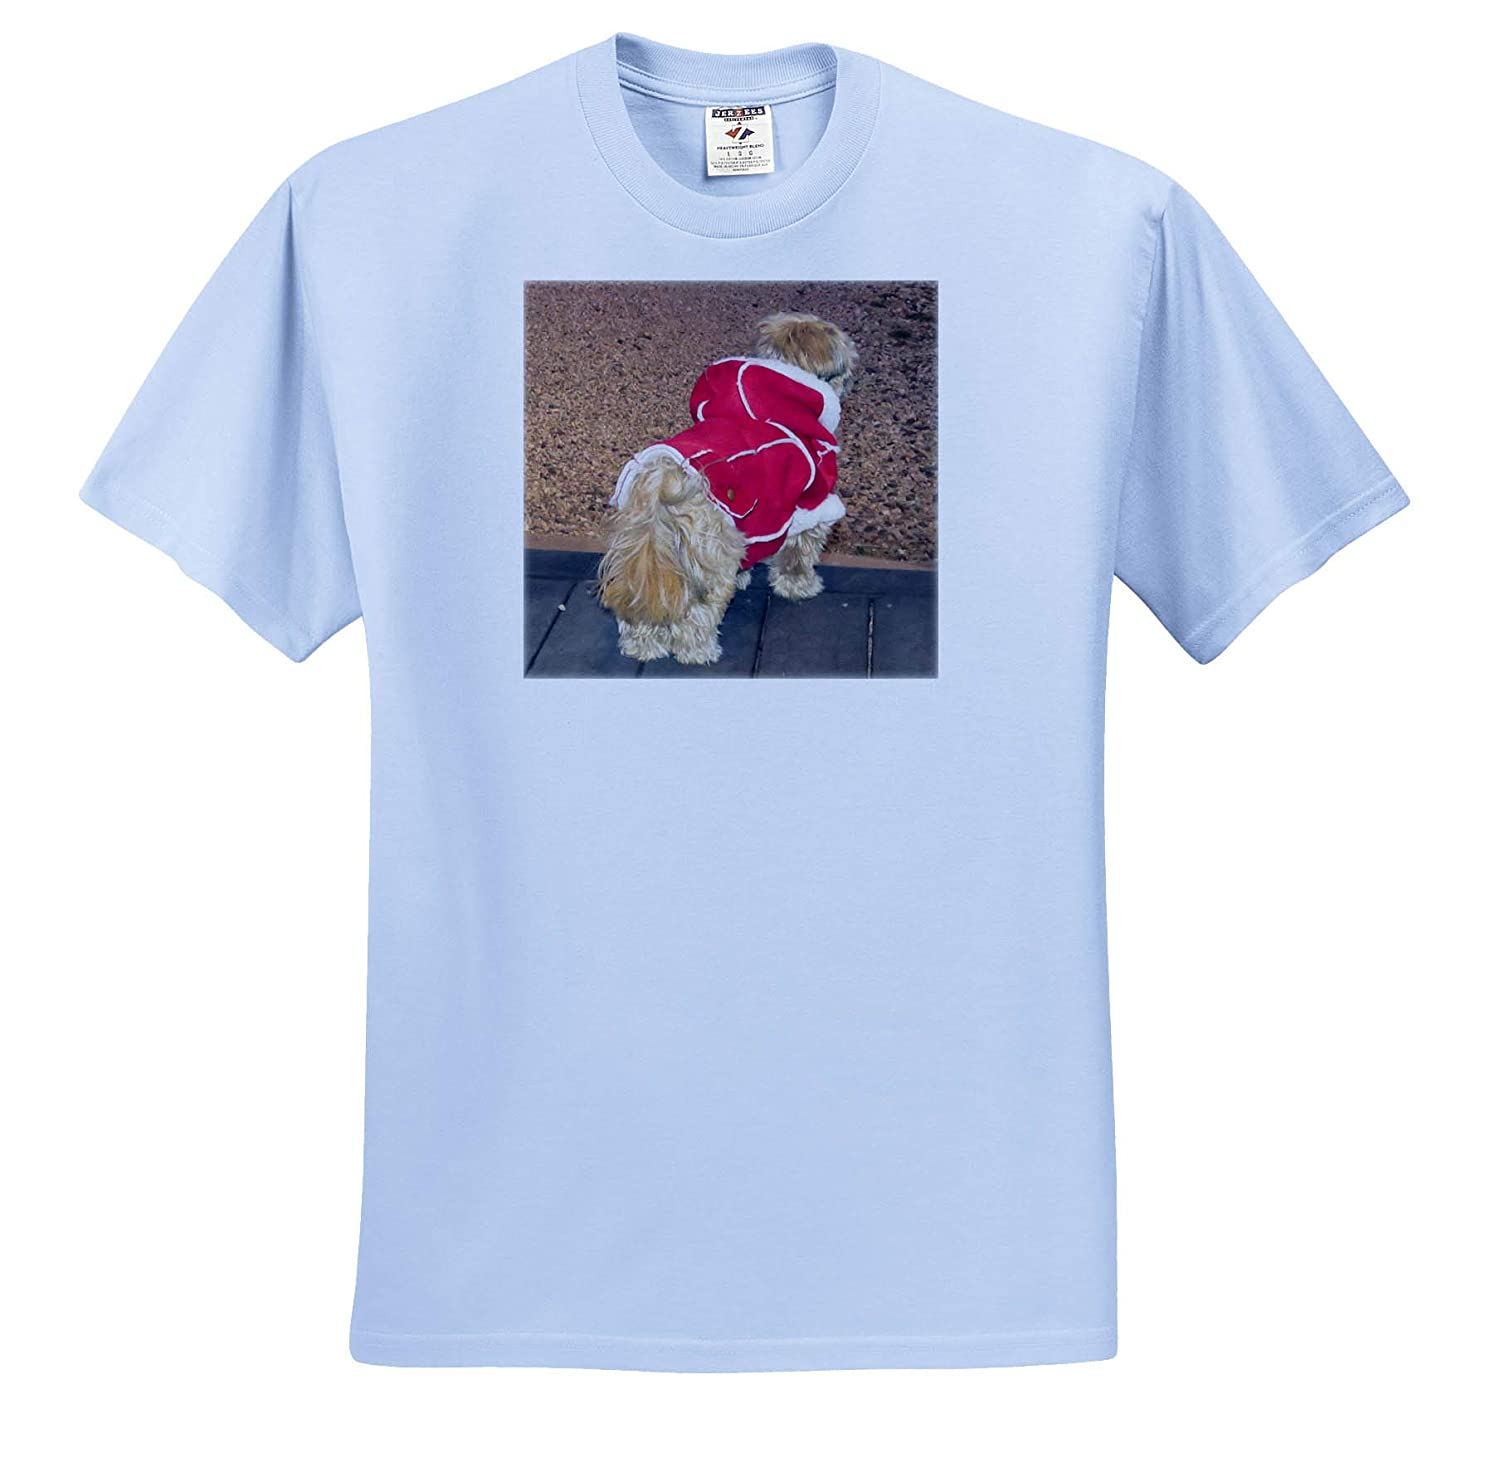 3dRose Jos Fauxtographee A Christmas Coat on an Adorable Shih Tzu Doggie Red Coat Puppy T-Shirts